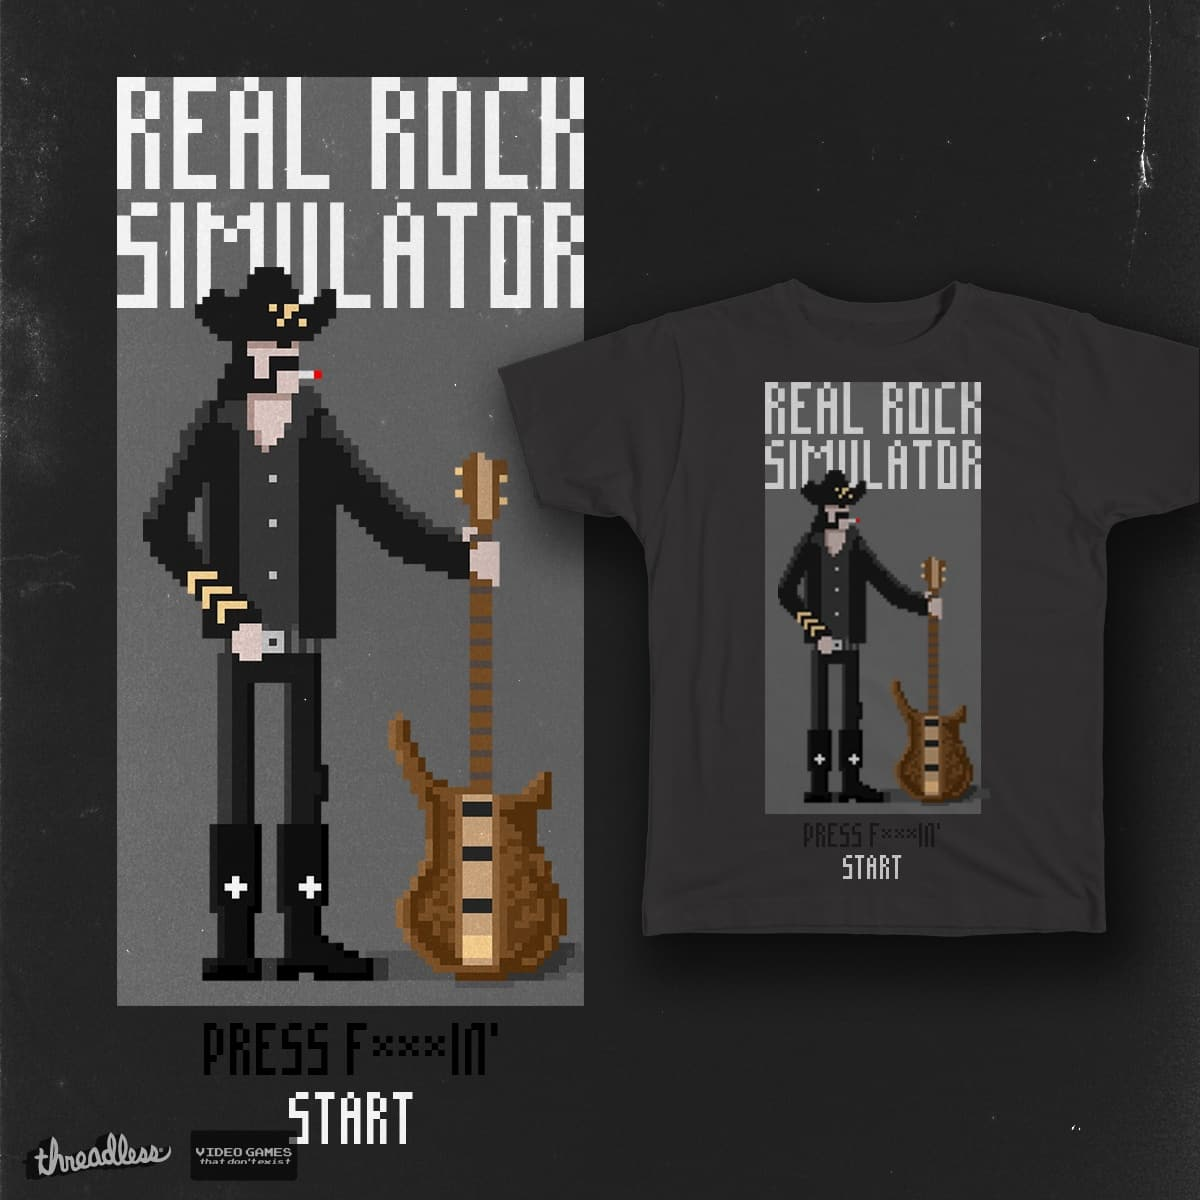 REAL ROCK SIMULATOR by indigoworks on Threadless